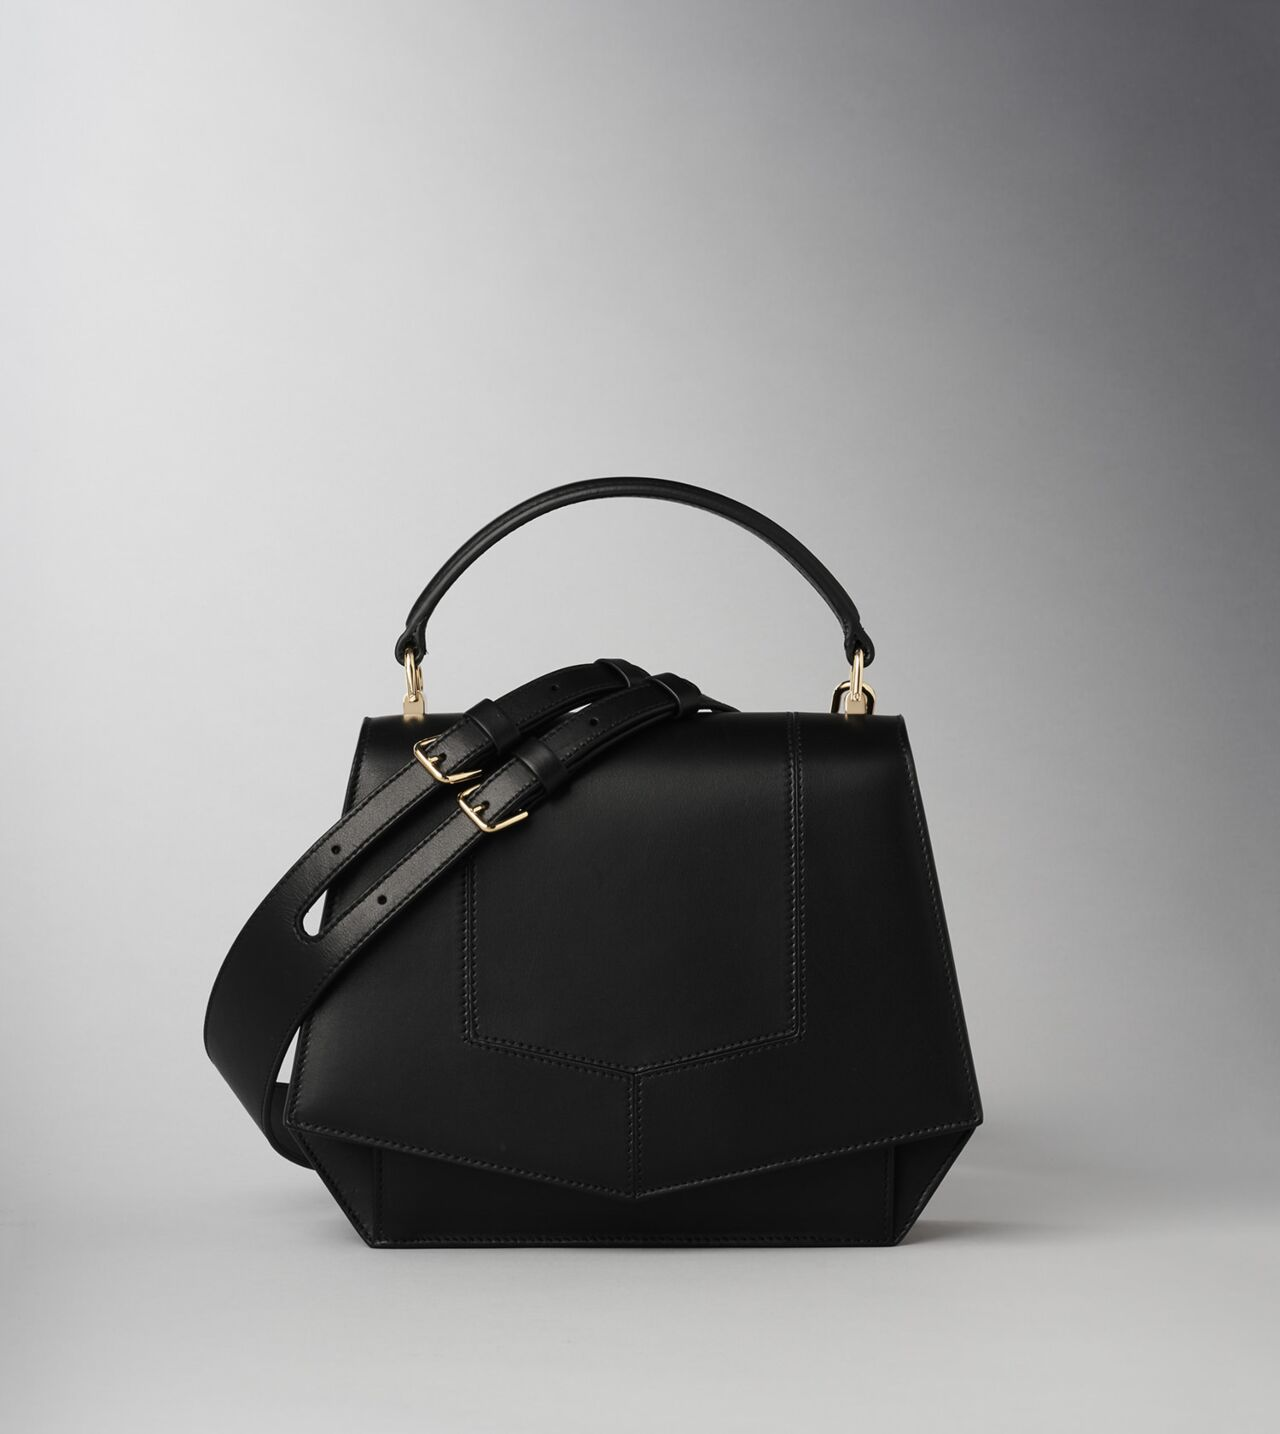 Picture of Byredo Blueprint bag in Black leather and gold hardware